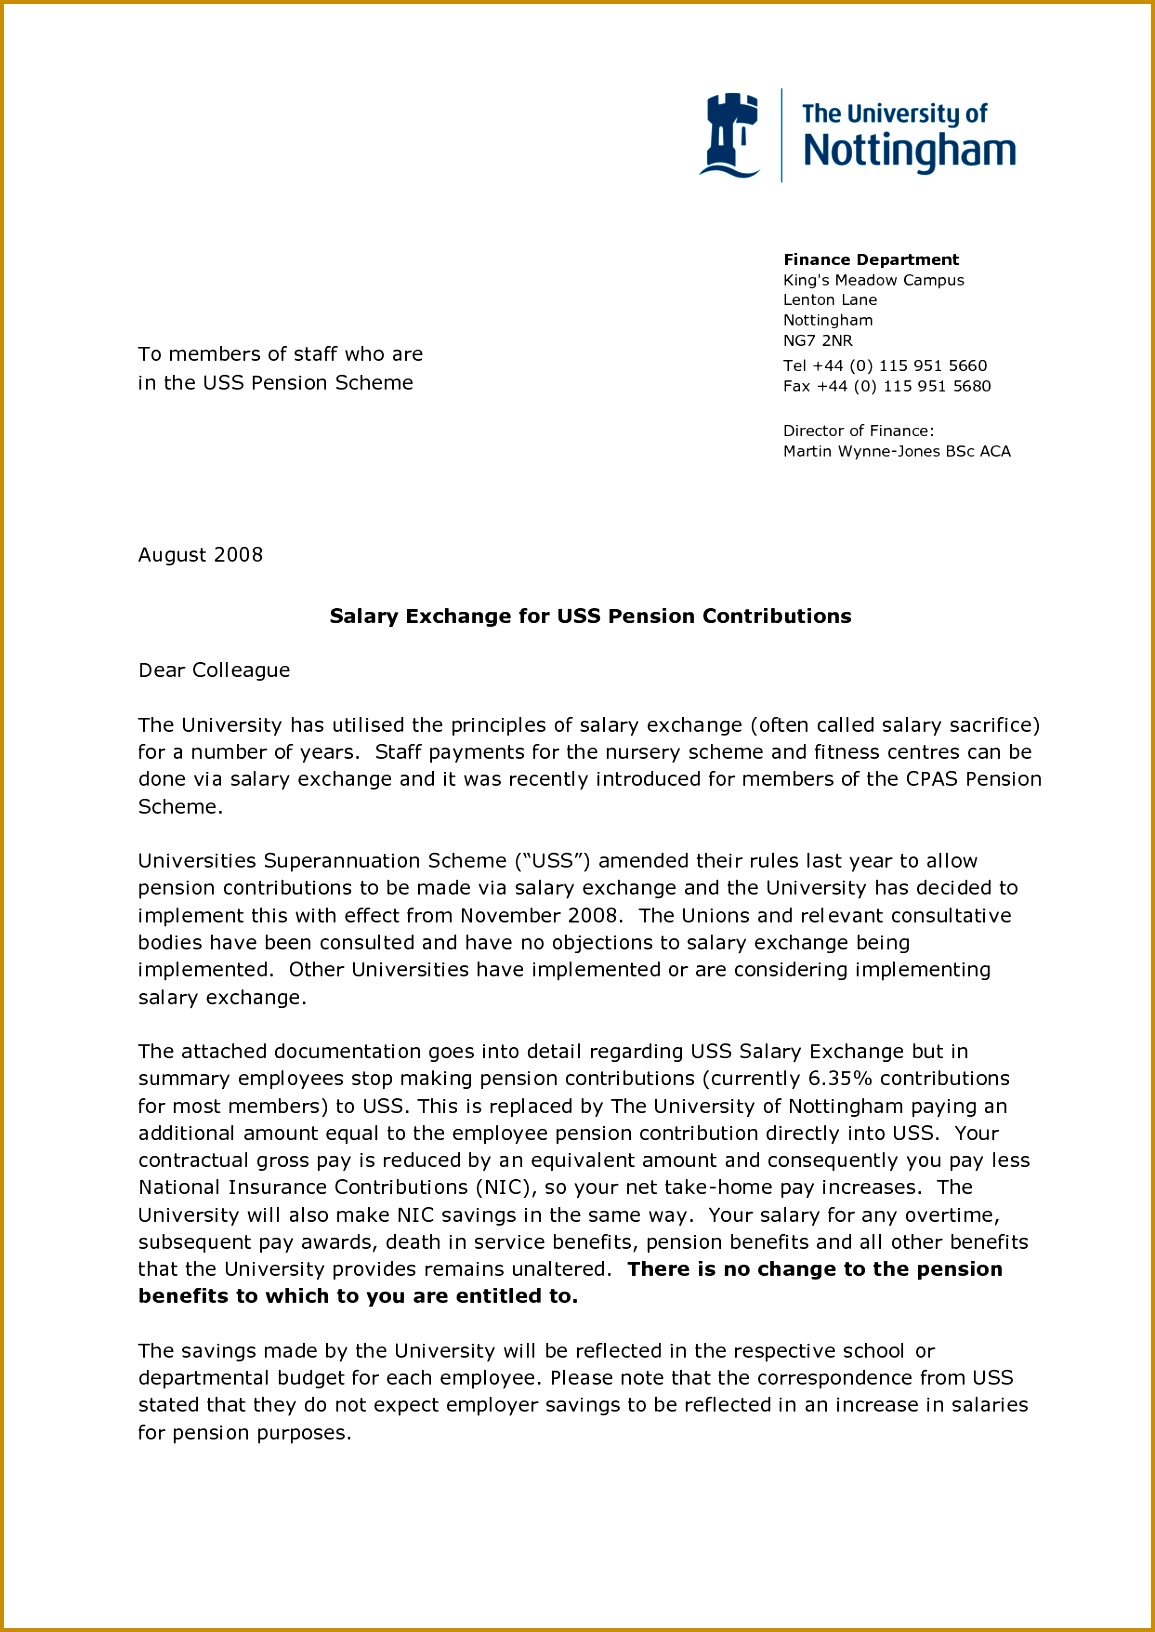 Free Business Letter Template Word 16321155